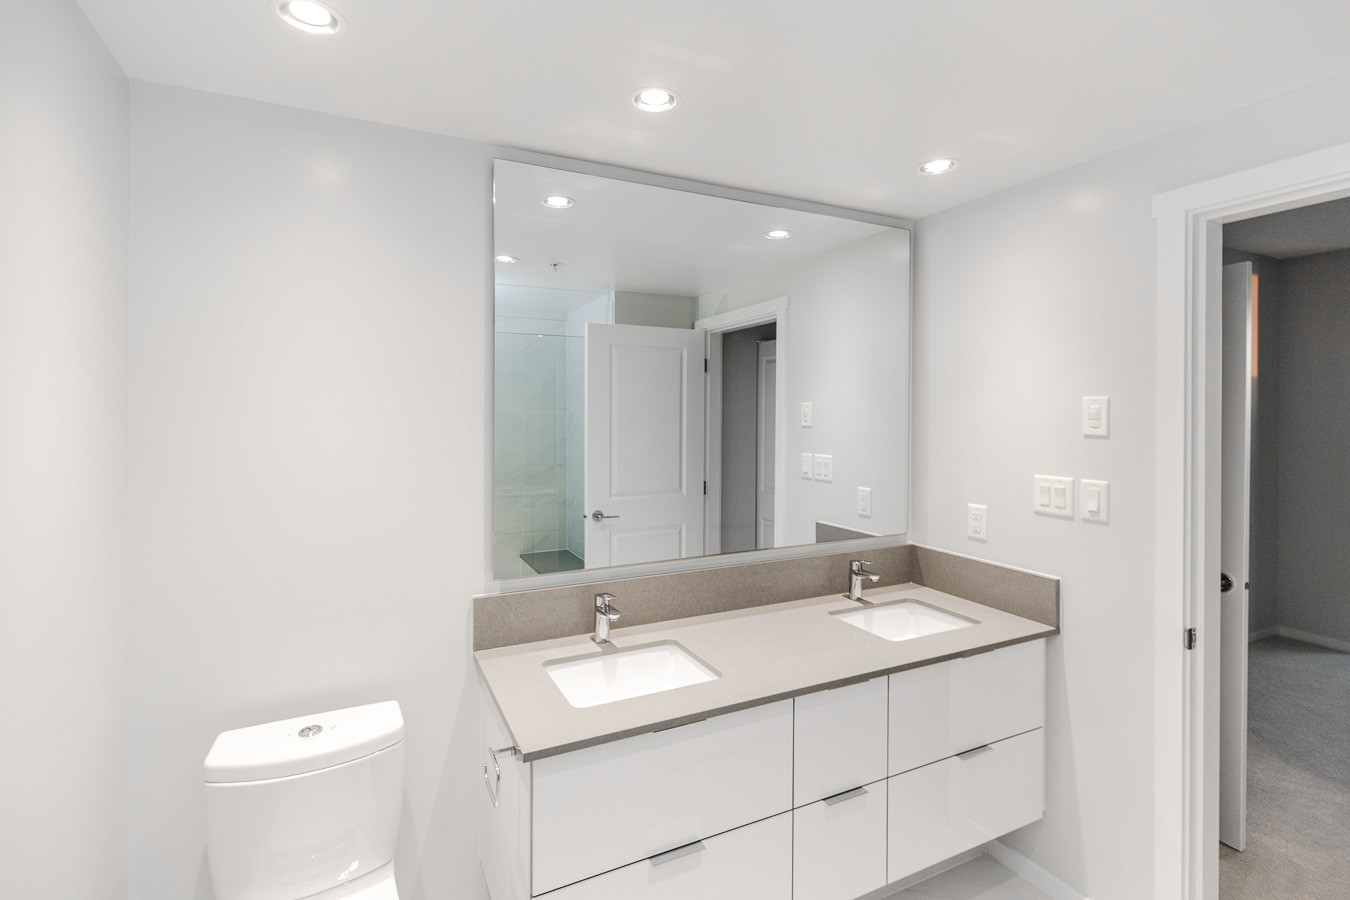 Two sink bathroom at Metrotown rental condo managed by Birds Nest Properties.